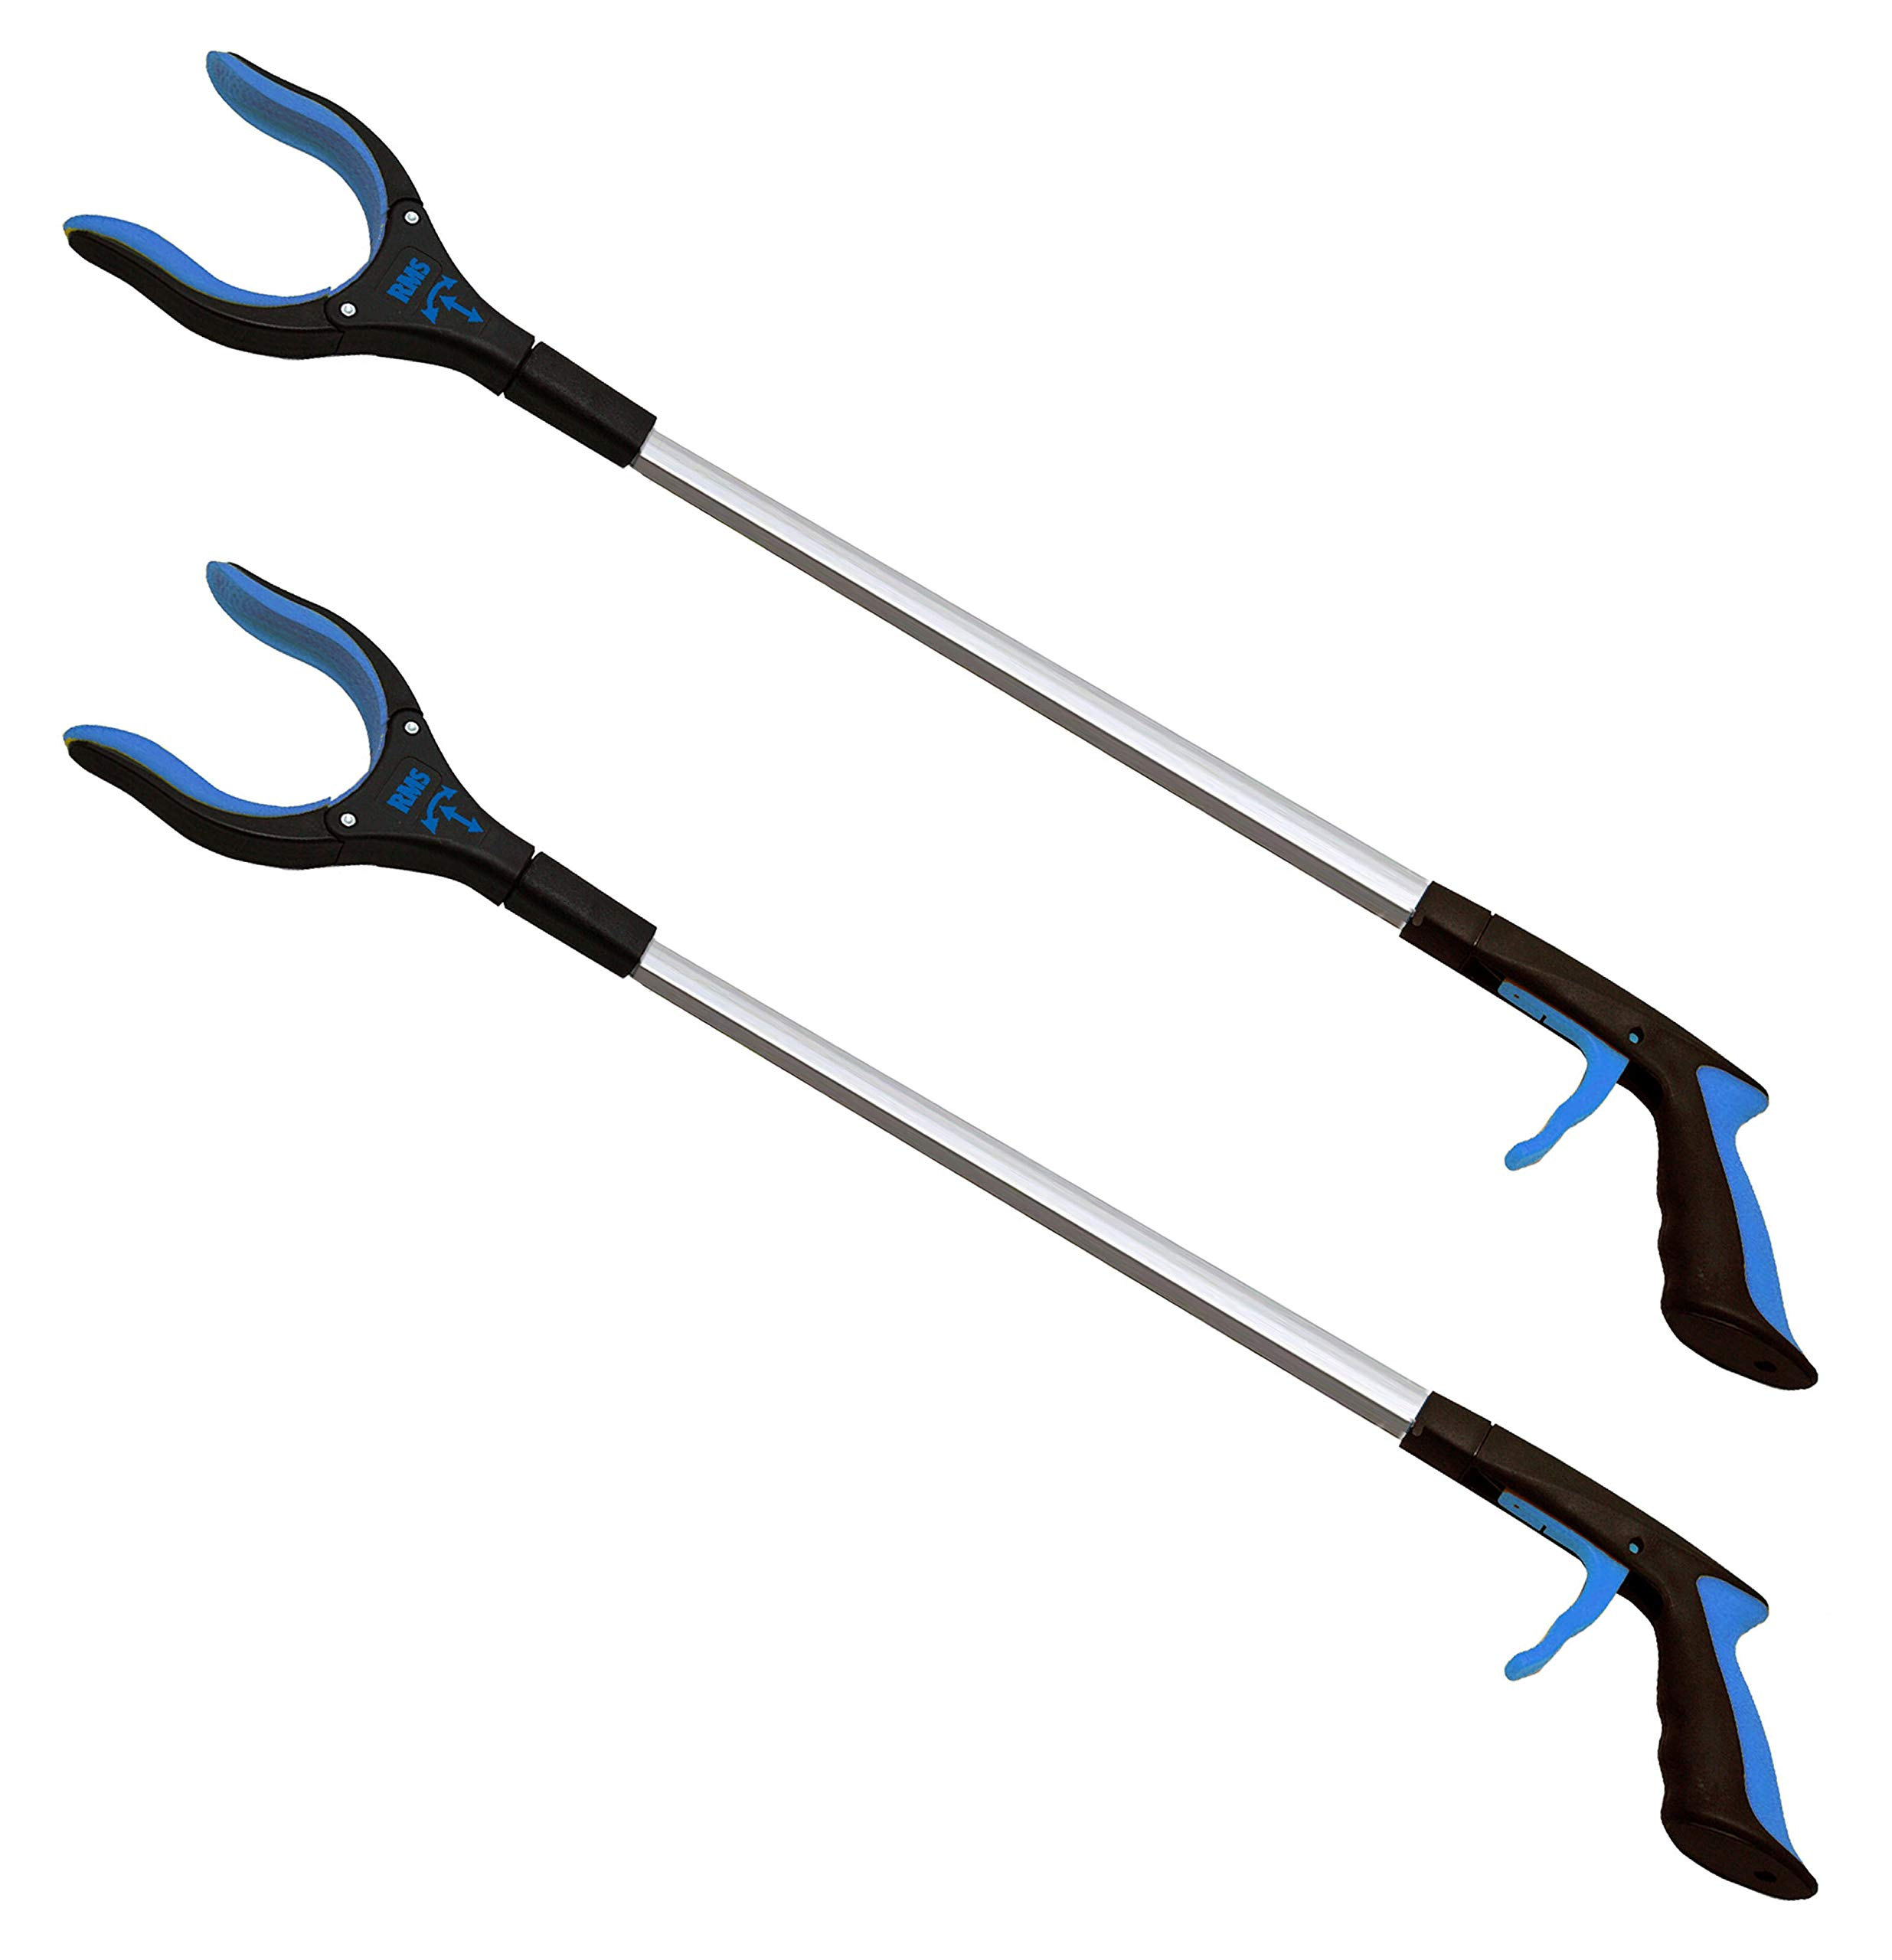 RMS 2-Pack 32'' Extra Long Grabber Reacher | Rotating Gripper | Mobility Aid Reaching Assist Tool | Trash Picker, Litter Pick Up, Garden Nabber, Arm Extension (Blue)